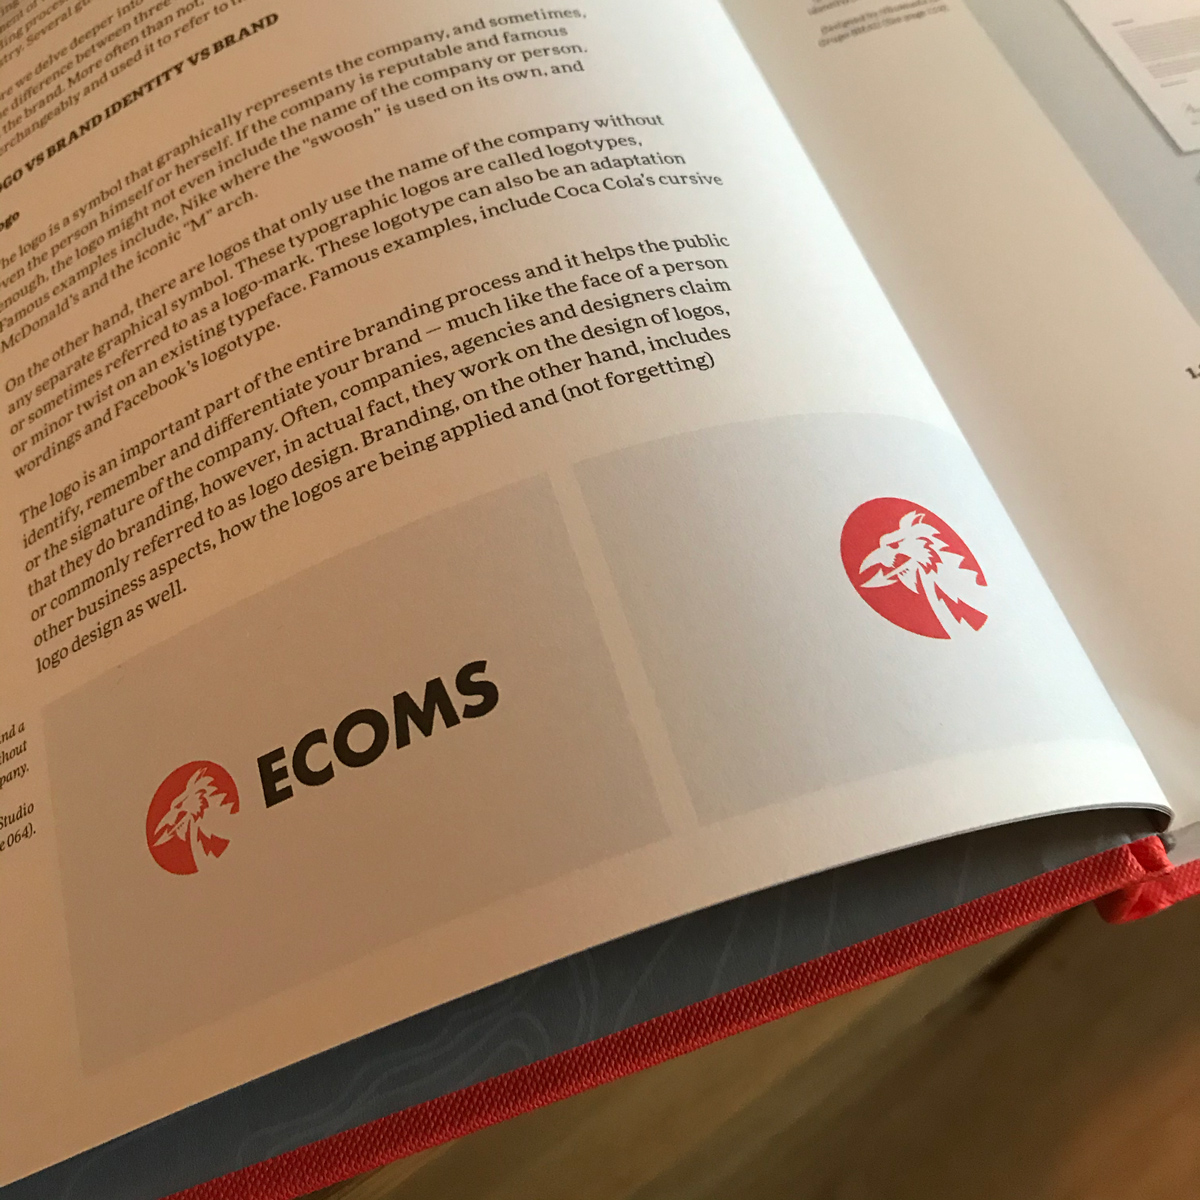 Construction logo design featured in a book